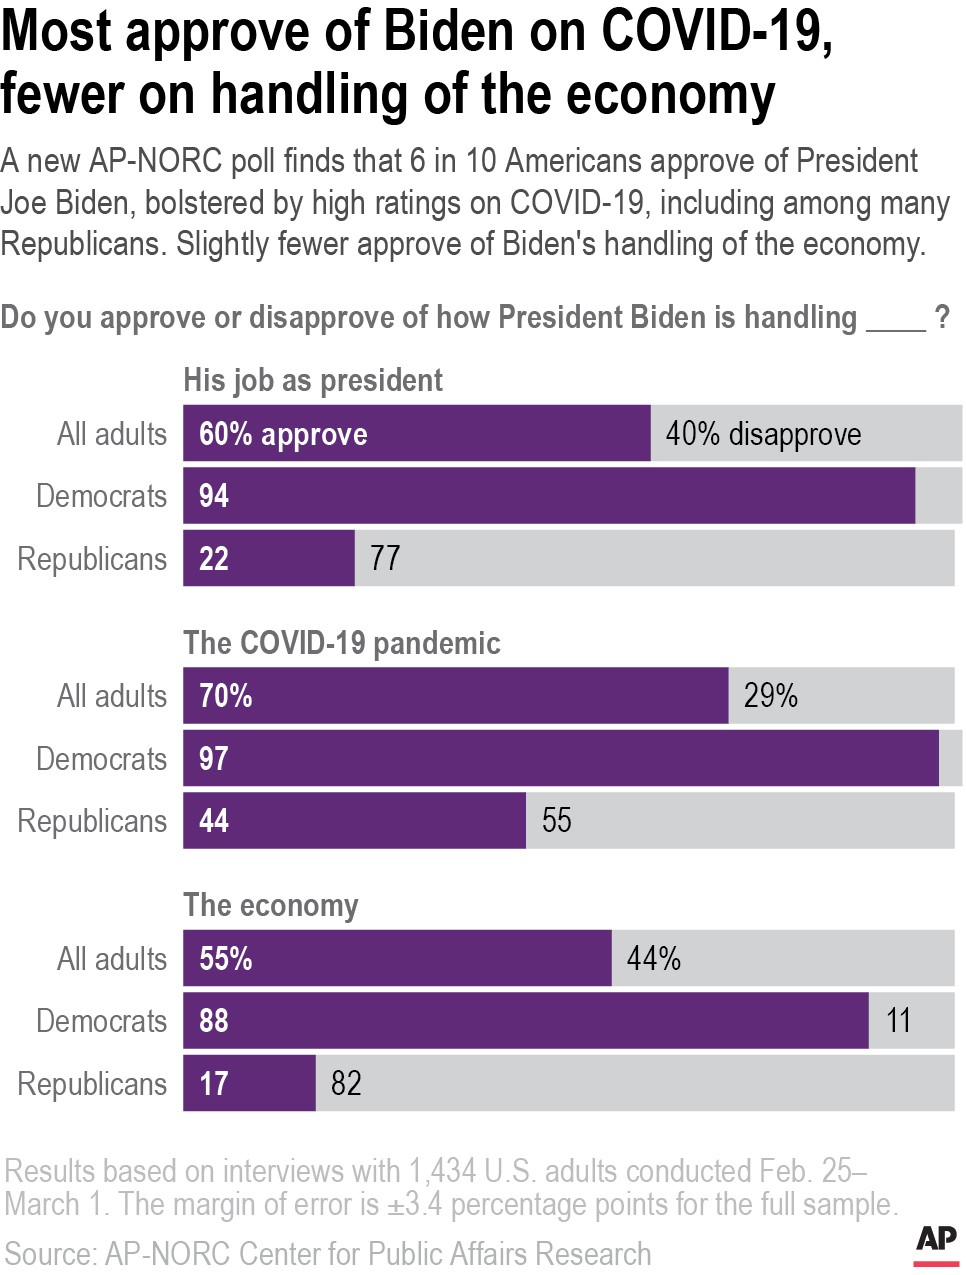 A new AP-NORC poll finds that 6 in 10 Americans approve of President Joe Biden, bolstered by high ratings on COVID-19, including among many Republican...